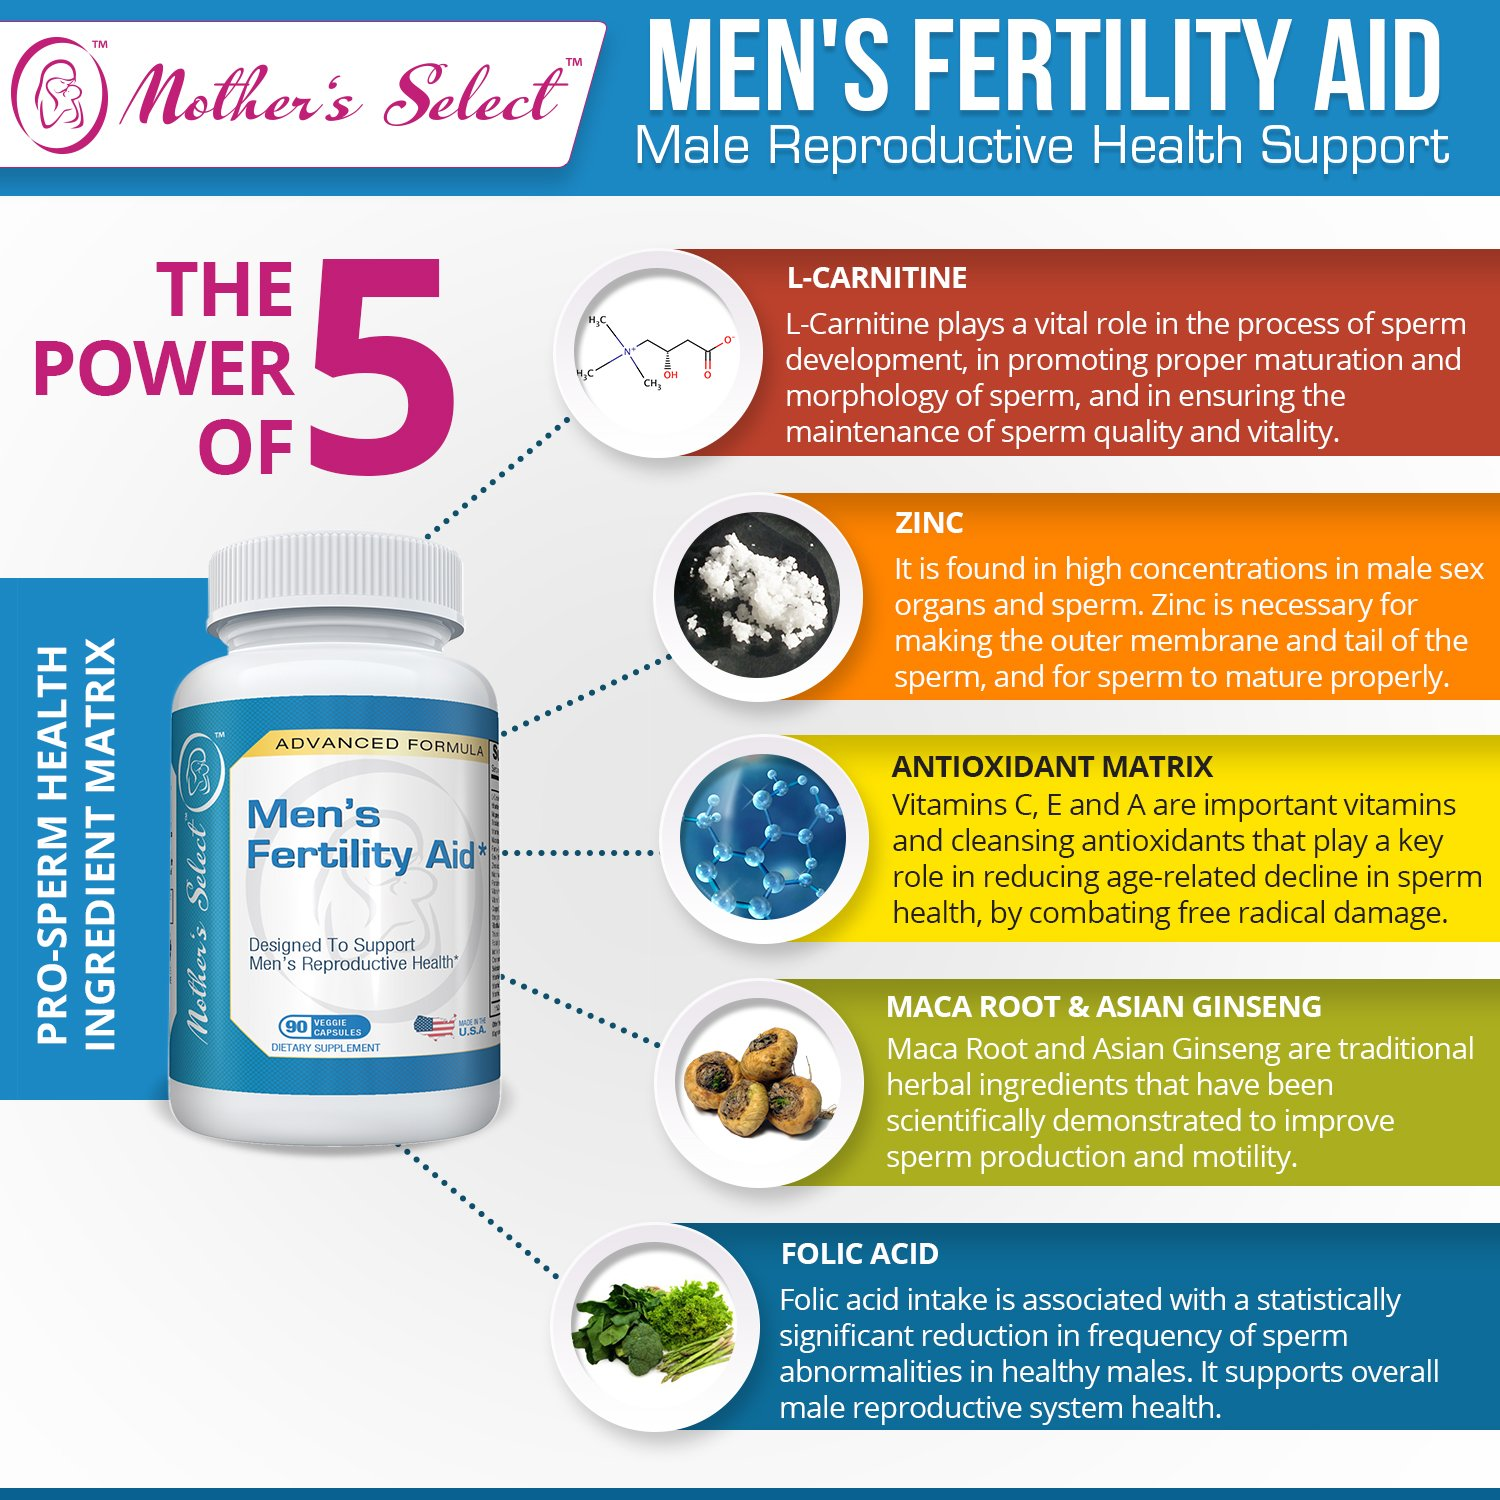 Amazon.com: Mens Fertility Aid by Mothers Select for Enhancing Male Reproductive Health, Raising Testosterone and Motility - Natural Ingredients, ...